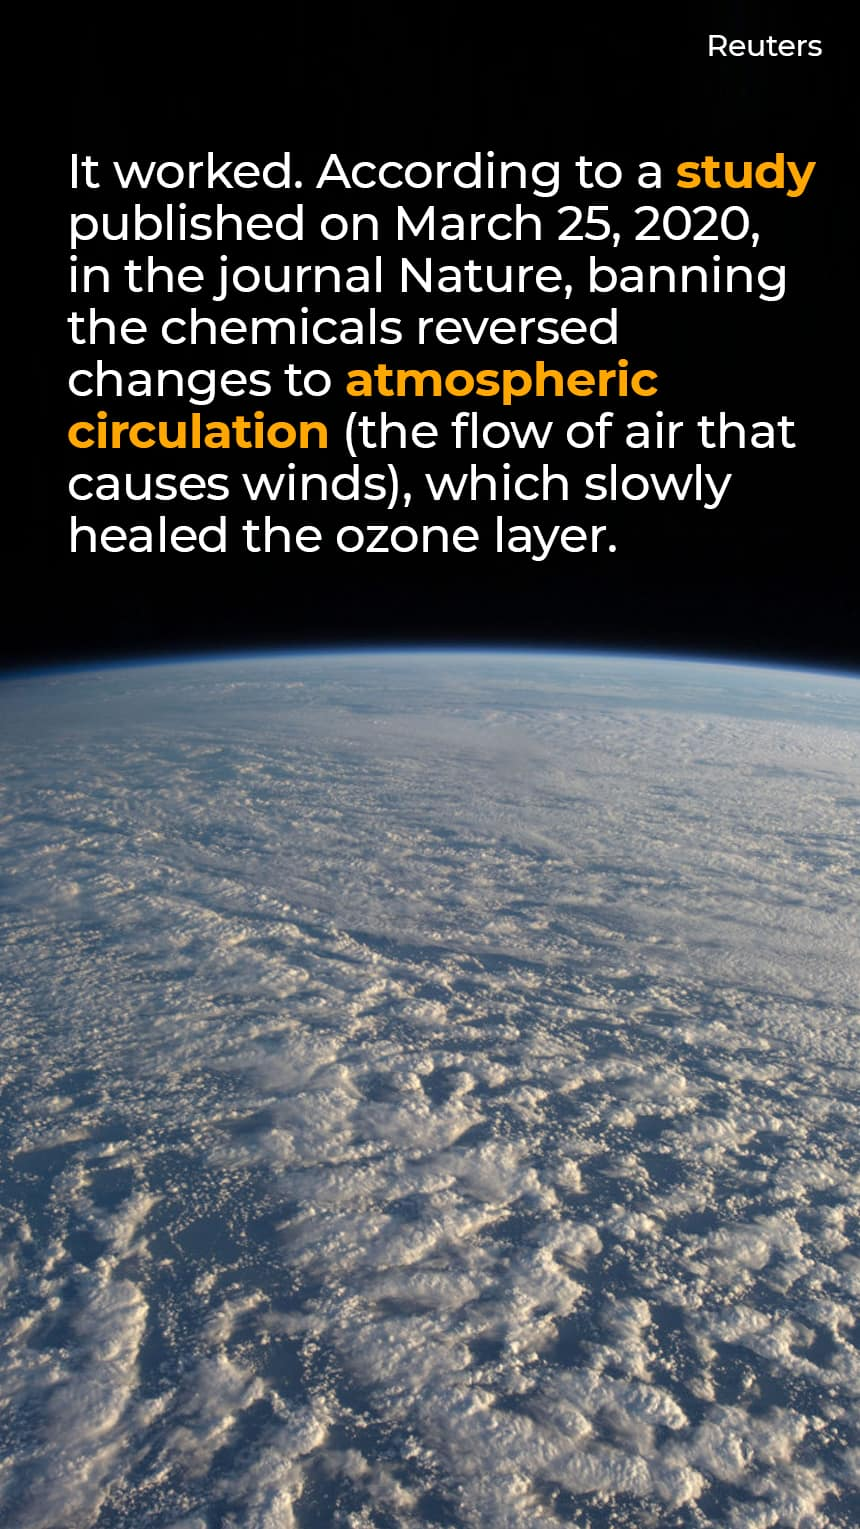 TEXT: It worked. According to a study published on March 25, 2020, in the journal Nature, banning the chemicals reversed changes to atmospheric circulation (the flow of air that causes winds), which slowly healed the ozone layer.   IMAGE: The earth seen from space.